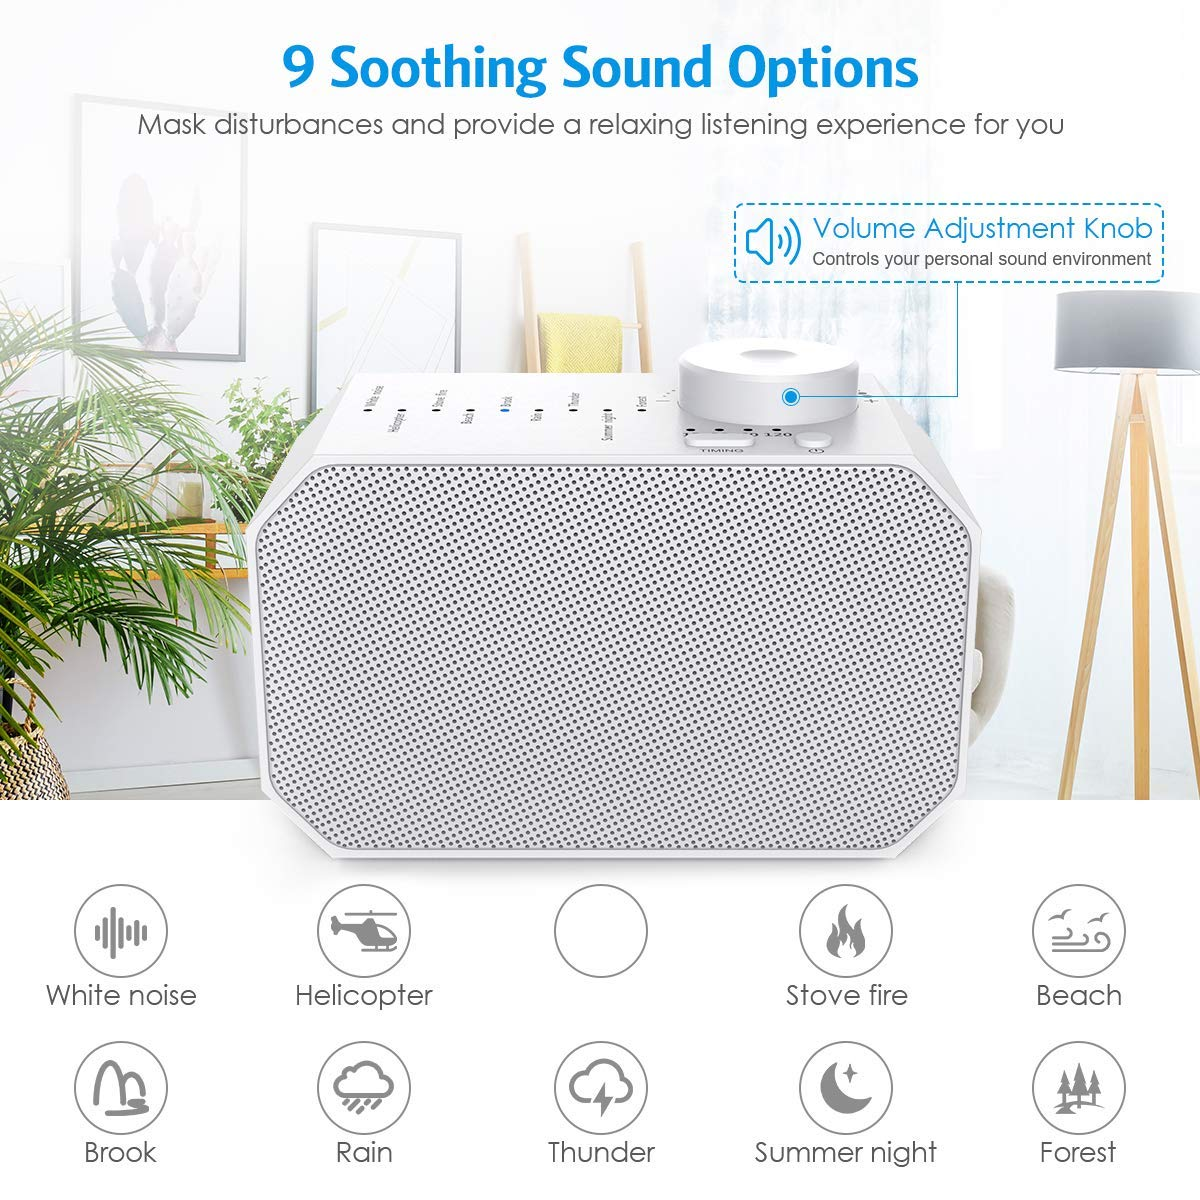 Criacr White Noise Machine, 9 Non-Looping Soothing Sounds Sleep Sound Machine, with Auto-Off Timer Sleeping Sound Therapy for Baby Adult Traveler, Portable for Home Office Travel